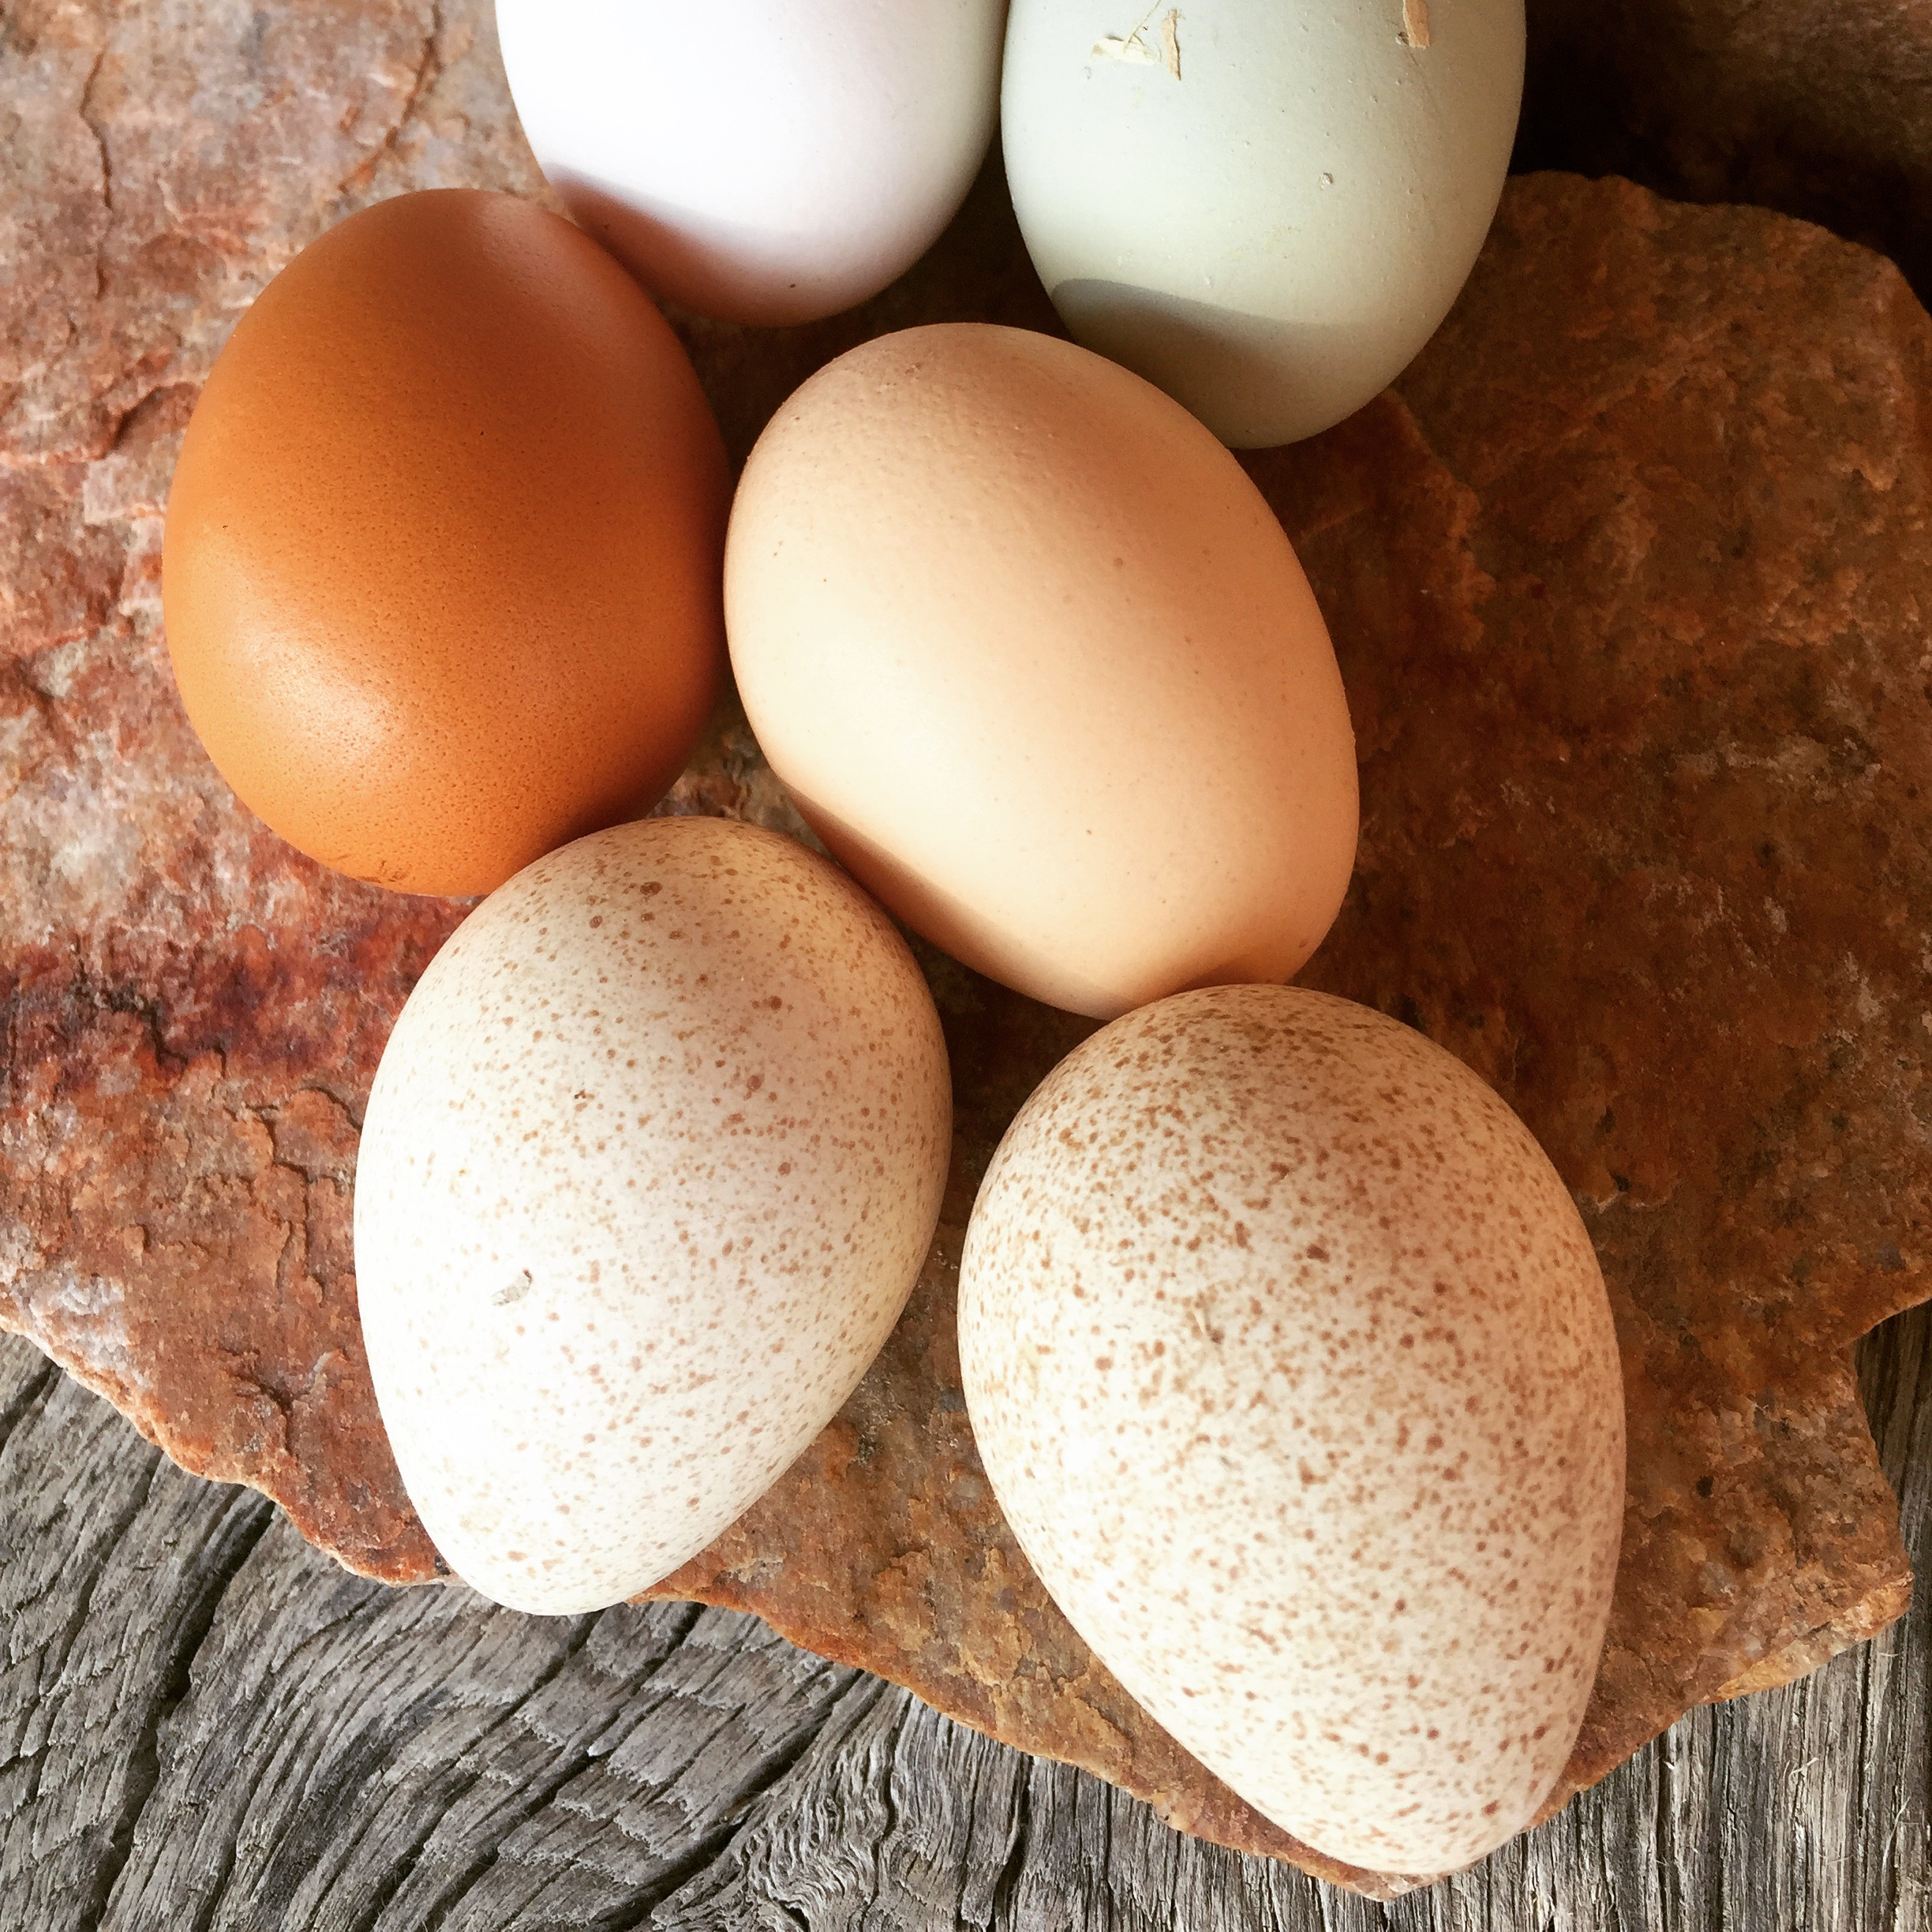 The two speckled eggs are from Mama Turkey.